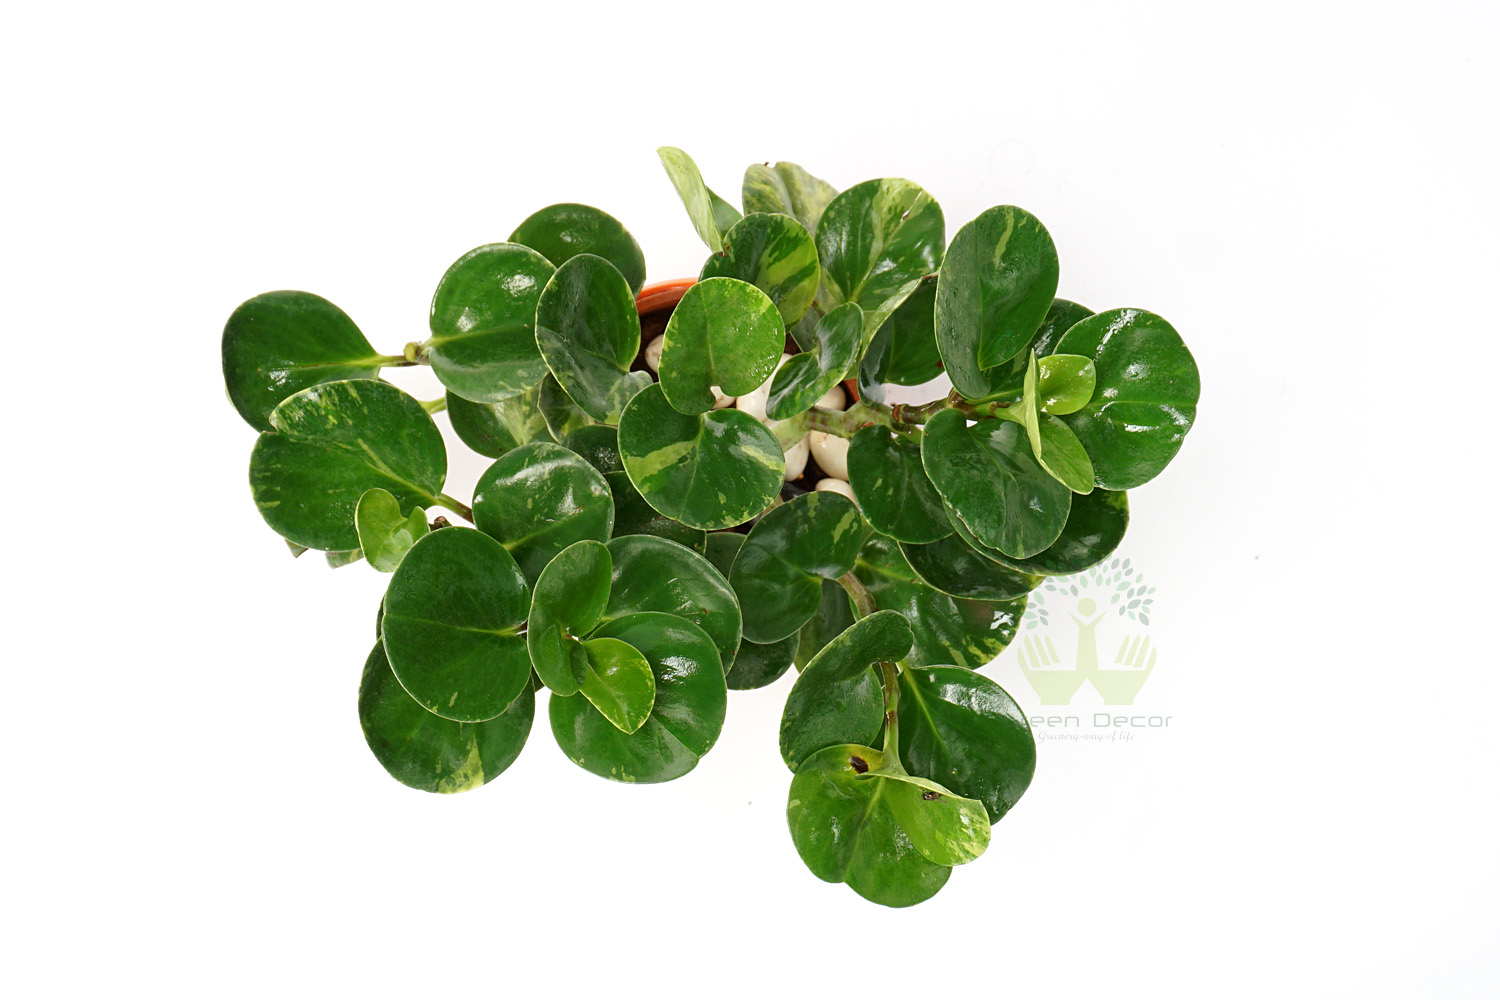 Buy Peperomia obra Plant Top View, White Pots and Seeds in Delhi NCR by the best online nursery shop Greendecor.